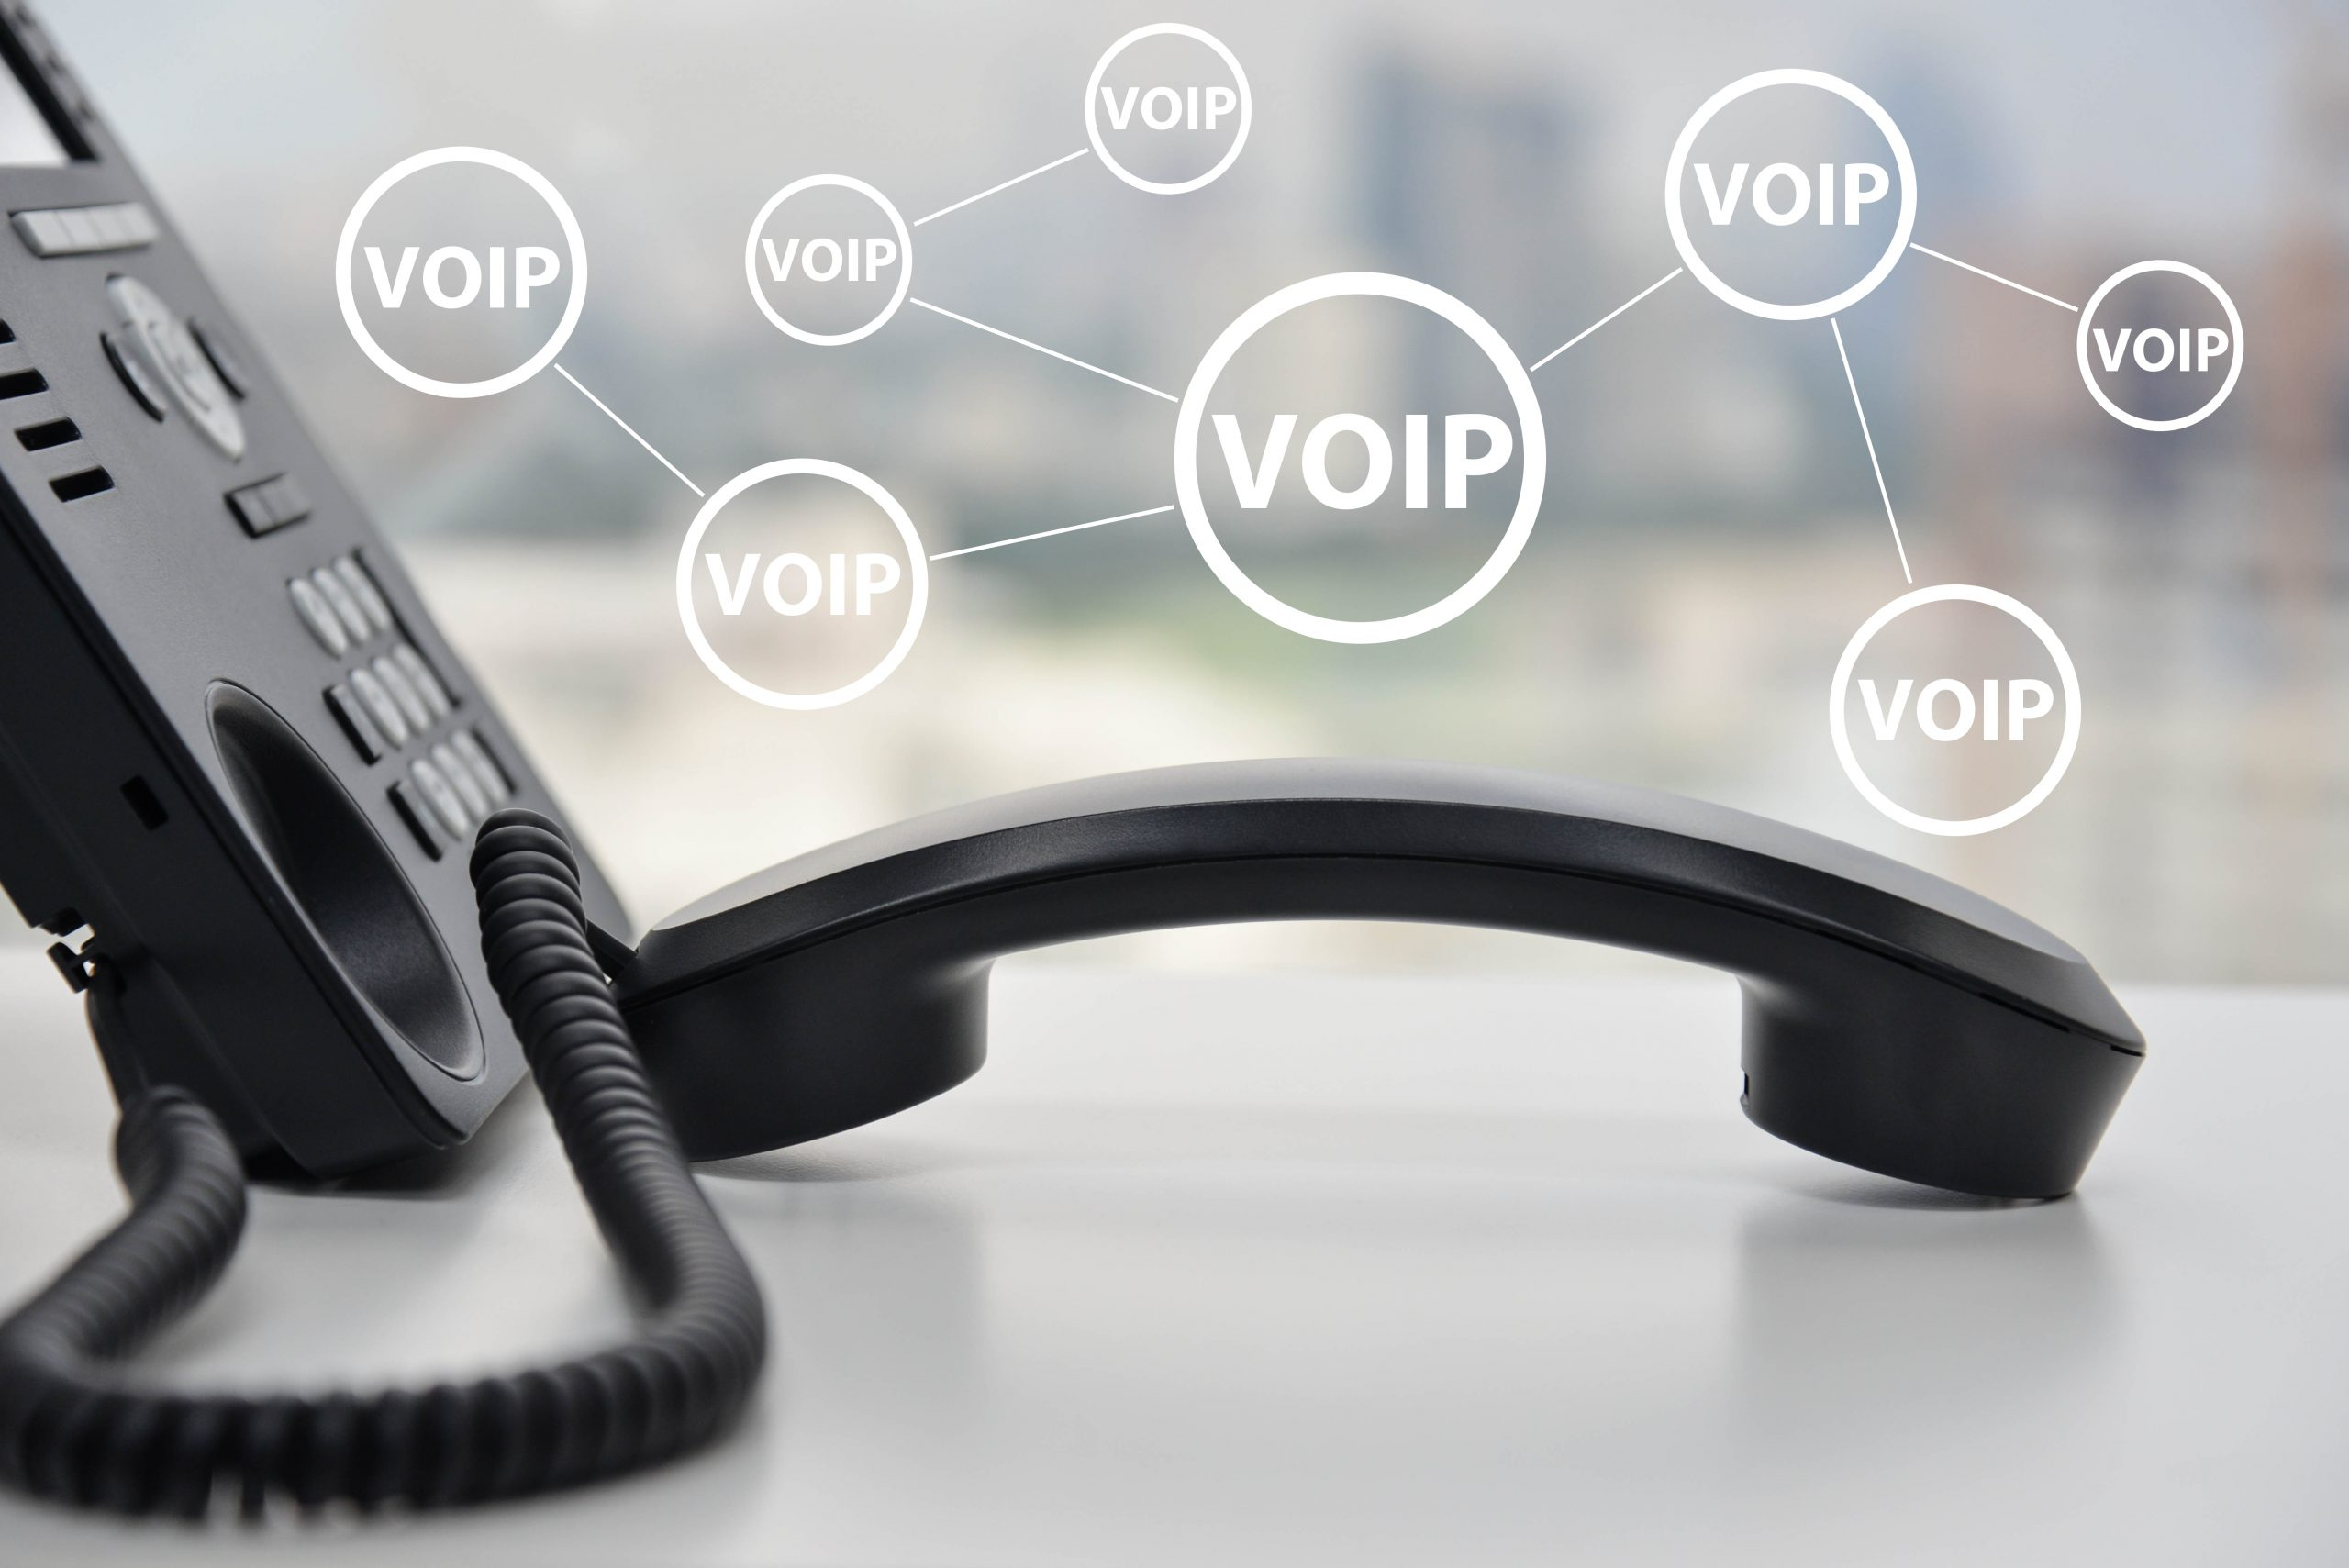 VOIP on desk, Voip diagram